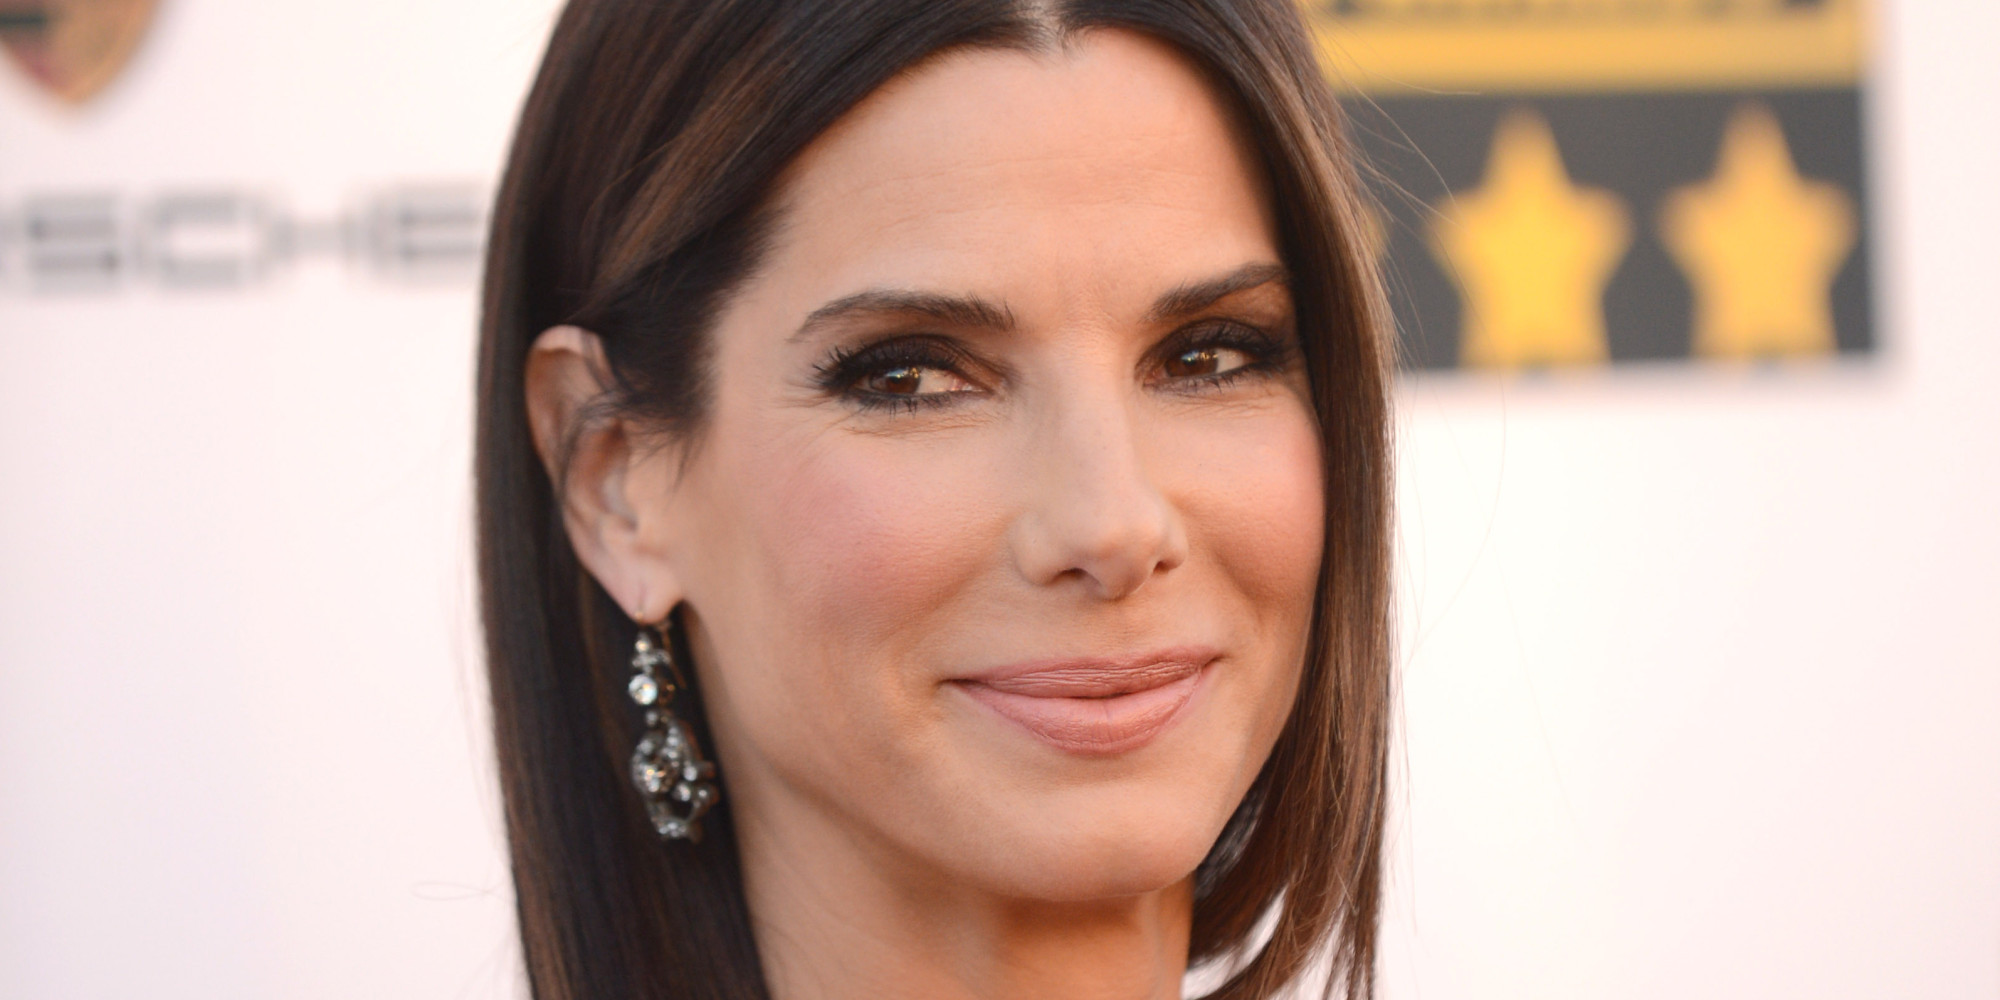 Sandra Bullock World's Beautiful Woman on Cover Pic of PEOPLE's Magazine 2015